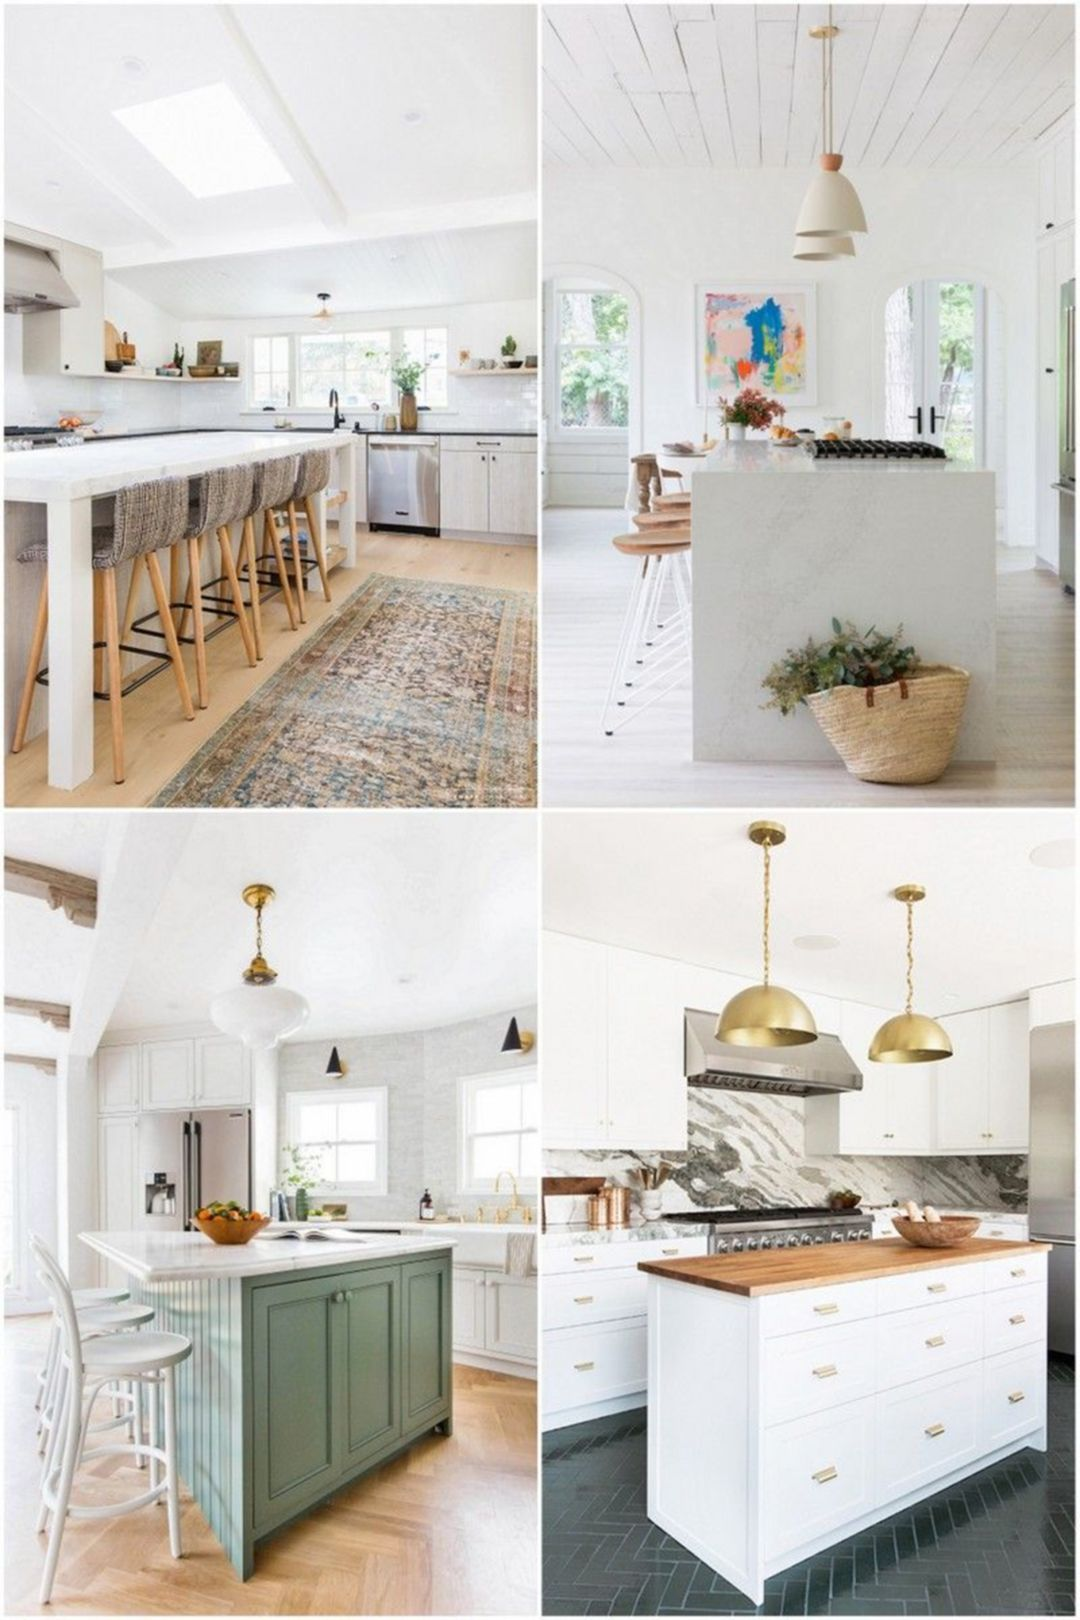 Best kitchen renovation ideas with before and after kitchen